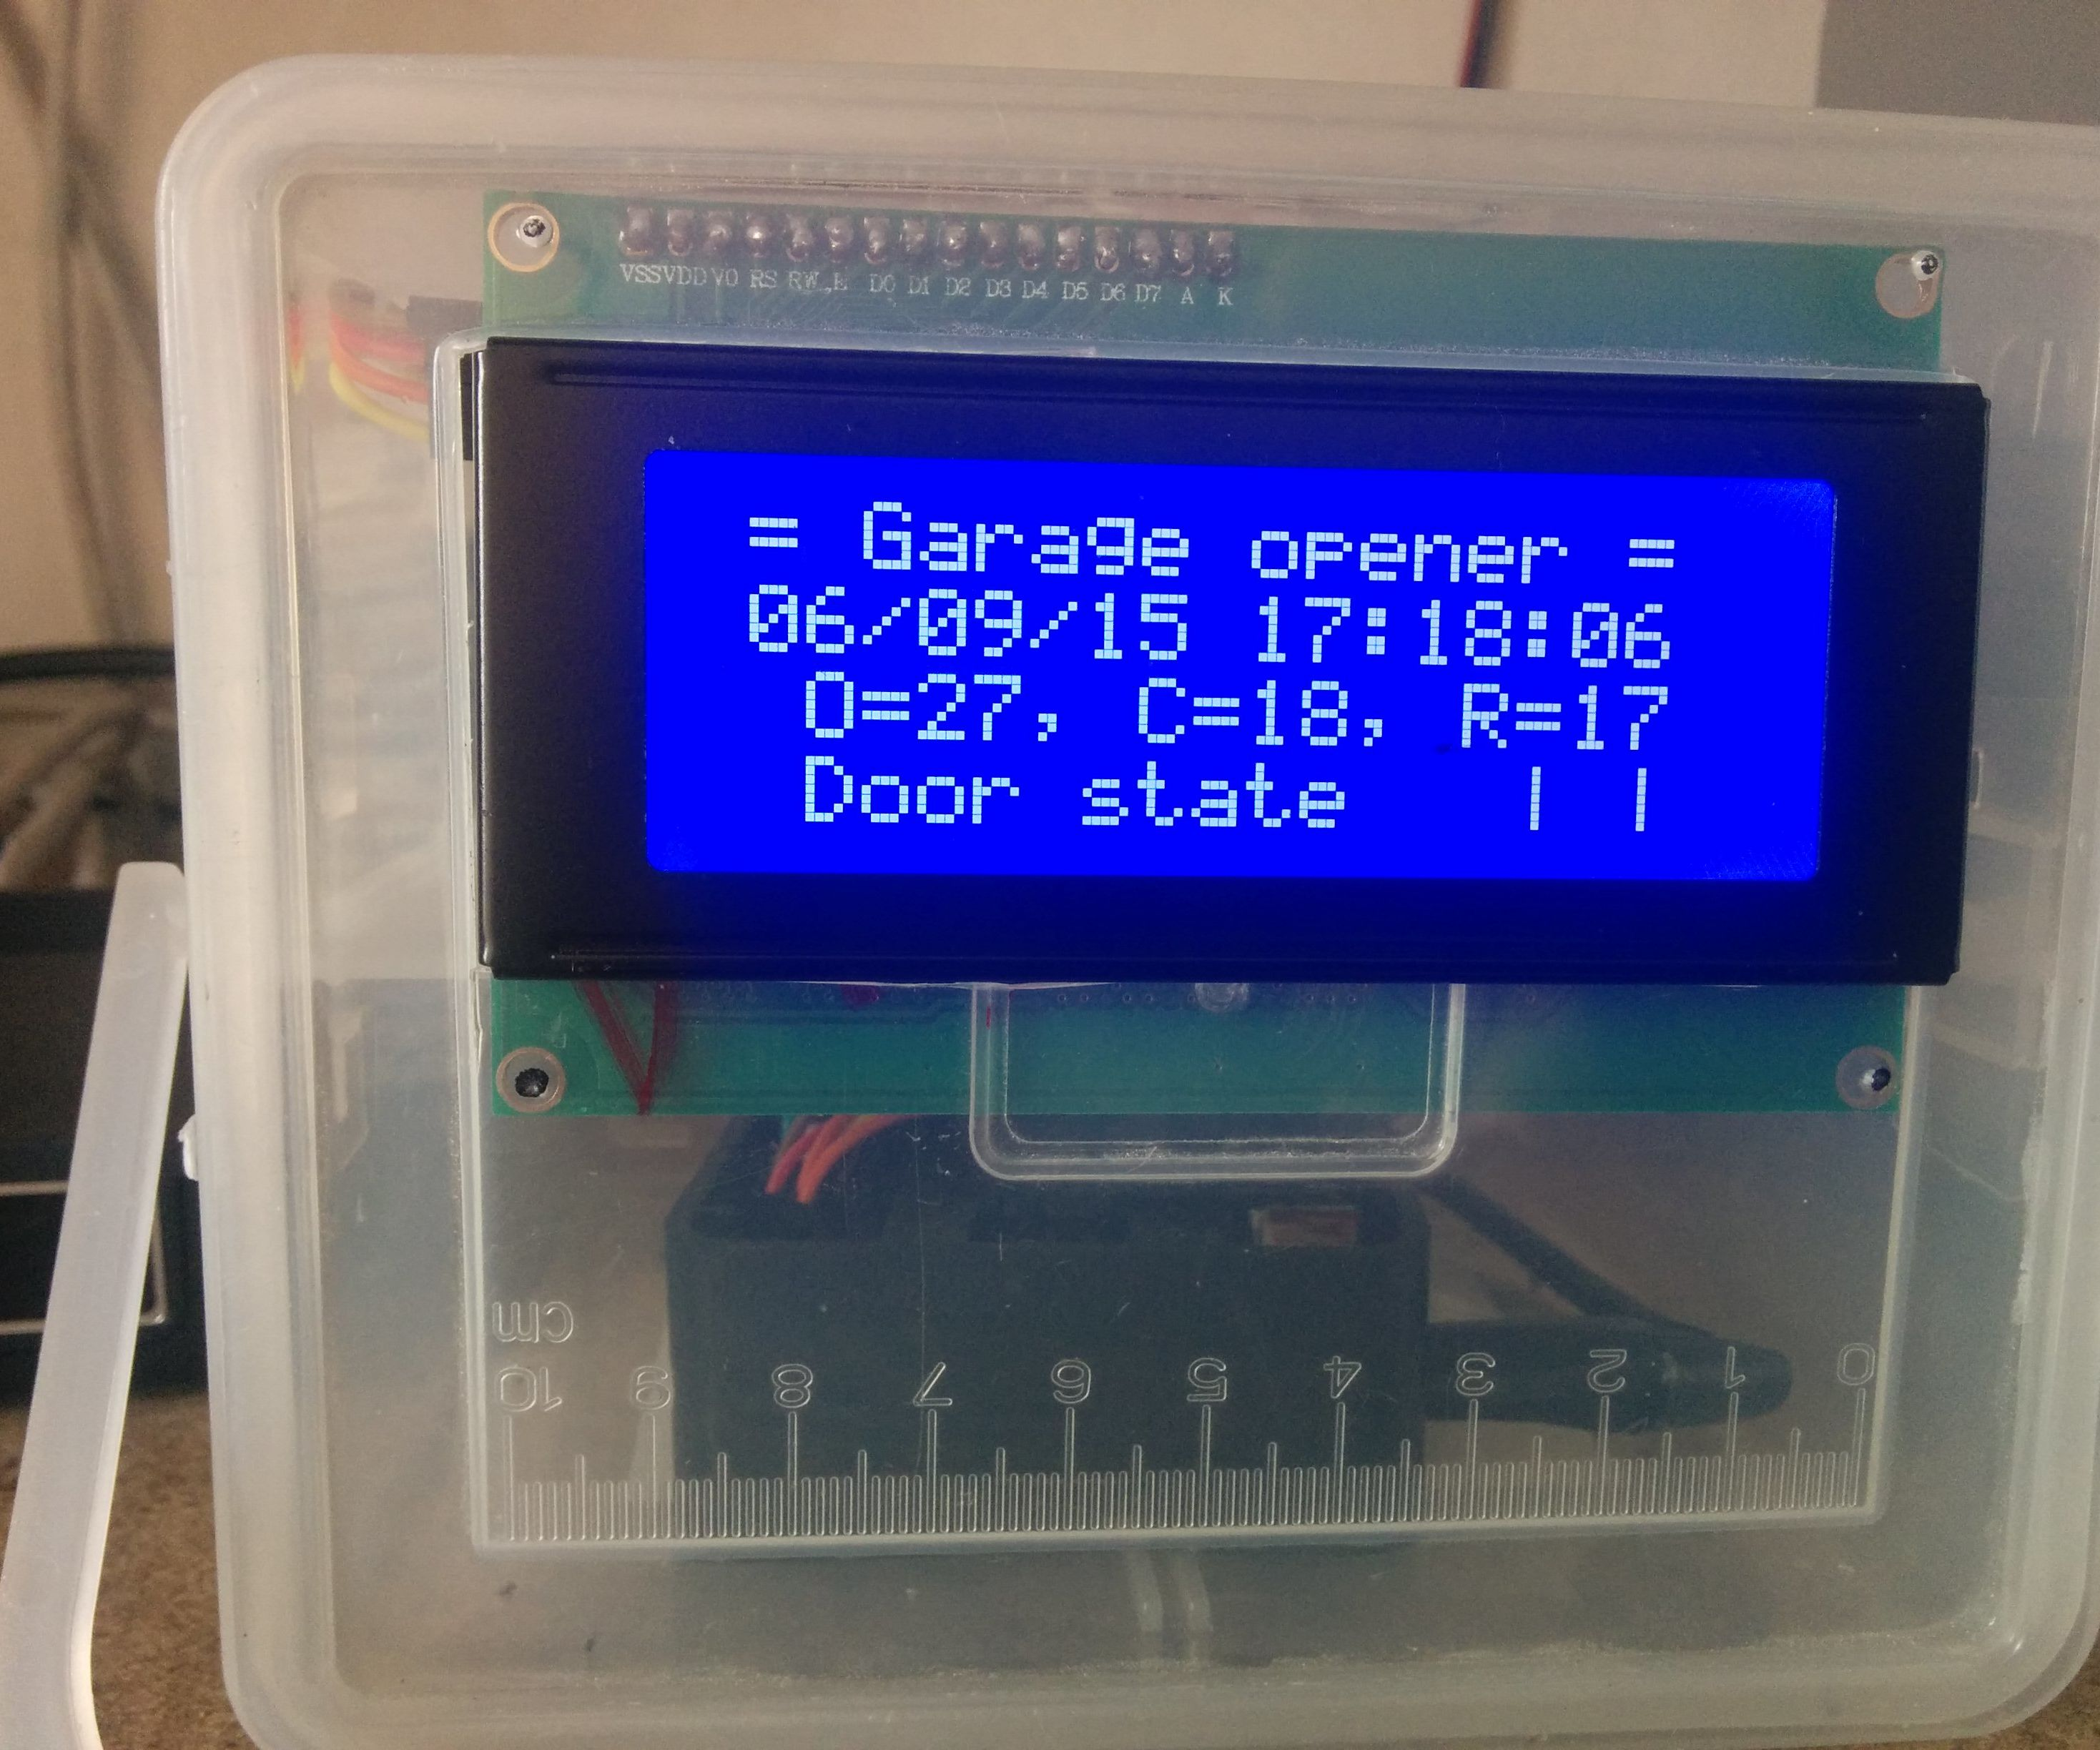 Garage Door Opener Using a Raspberry Pi